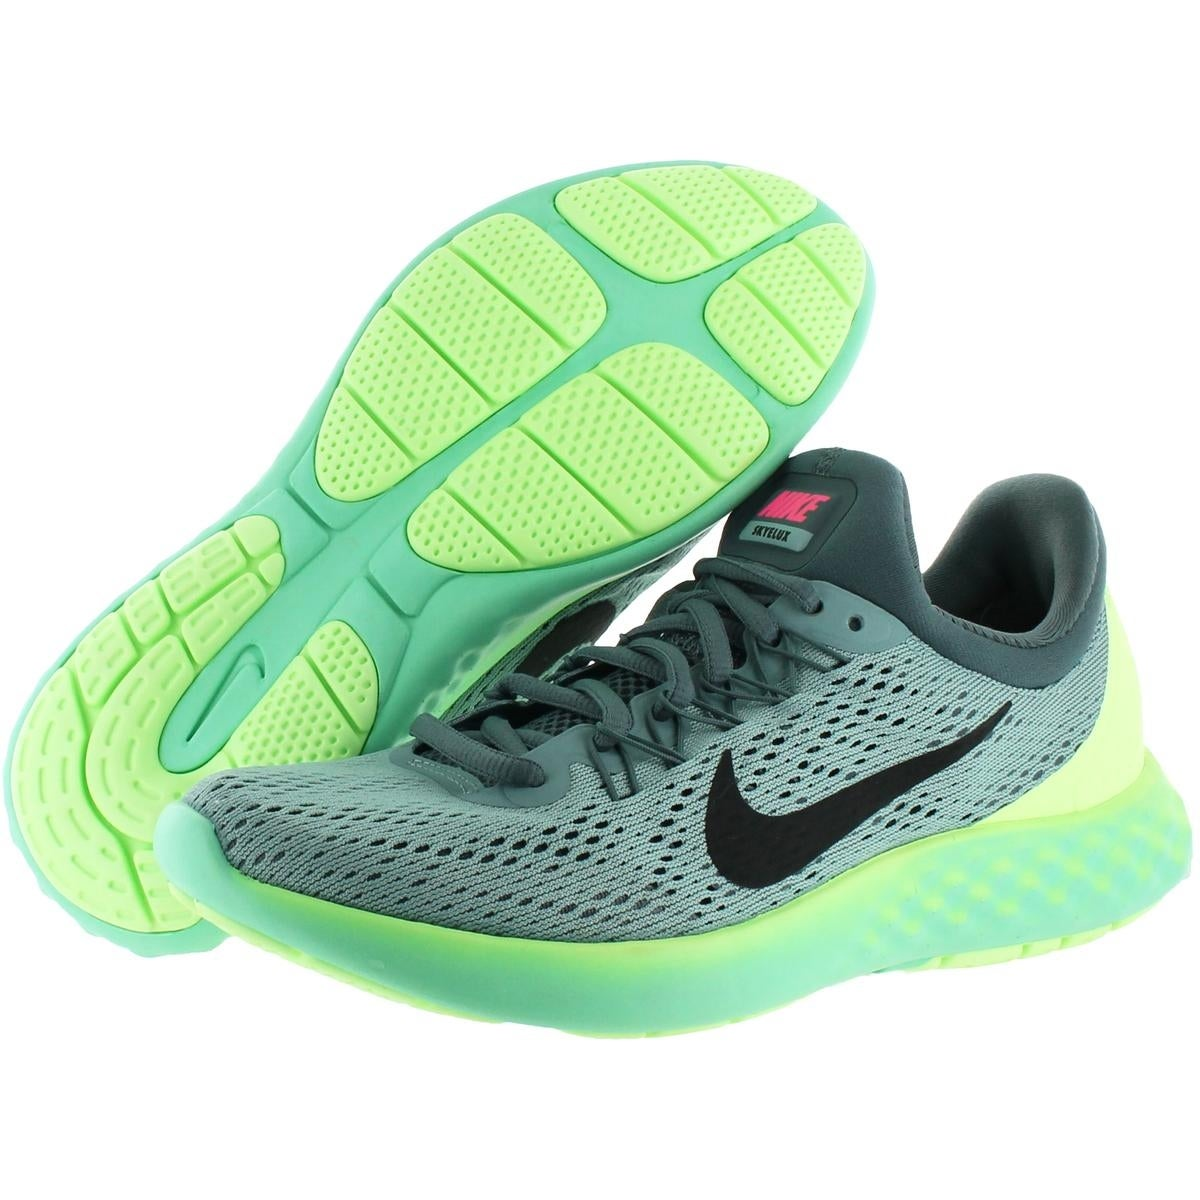 48461f80454 Shop Nike Womens Lunar Skyelux Running Shoes Round Toe Lace-Up - Free  Shipping Today - Overstock - 21848025